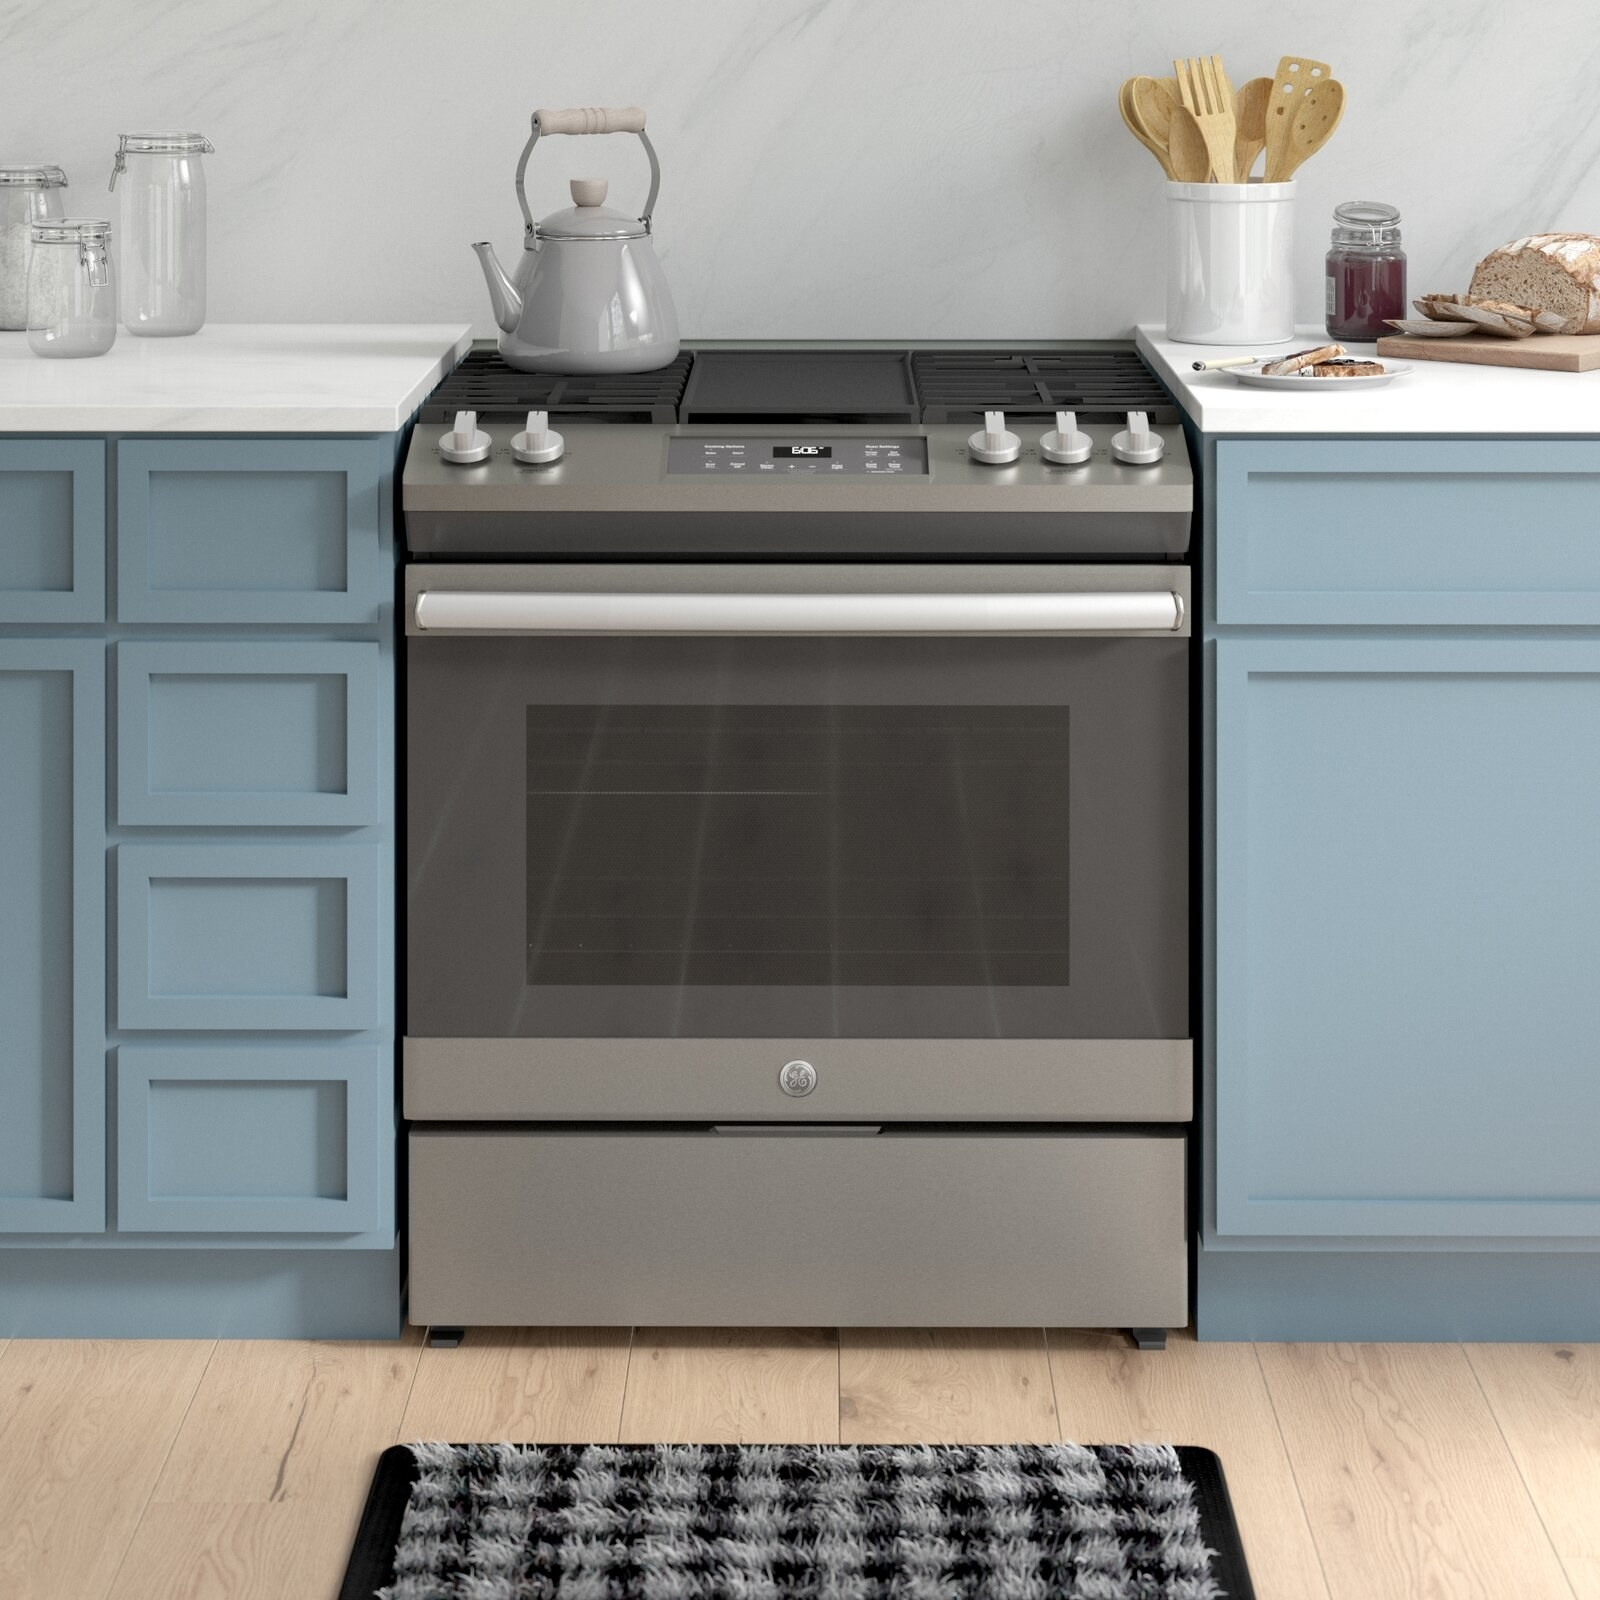 The stainless steel stove